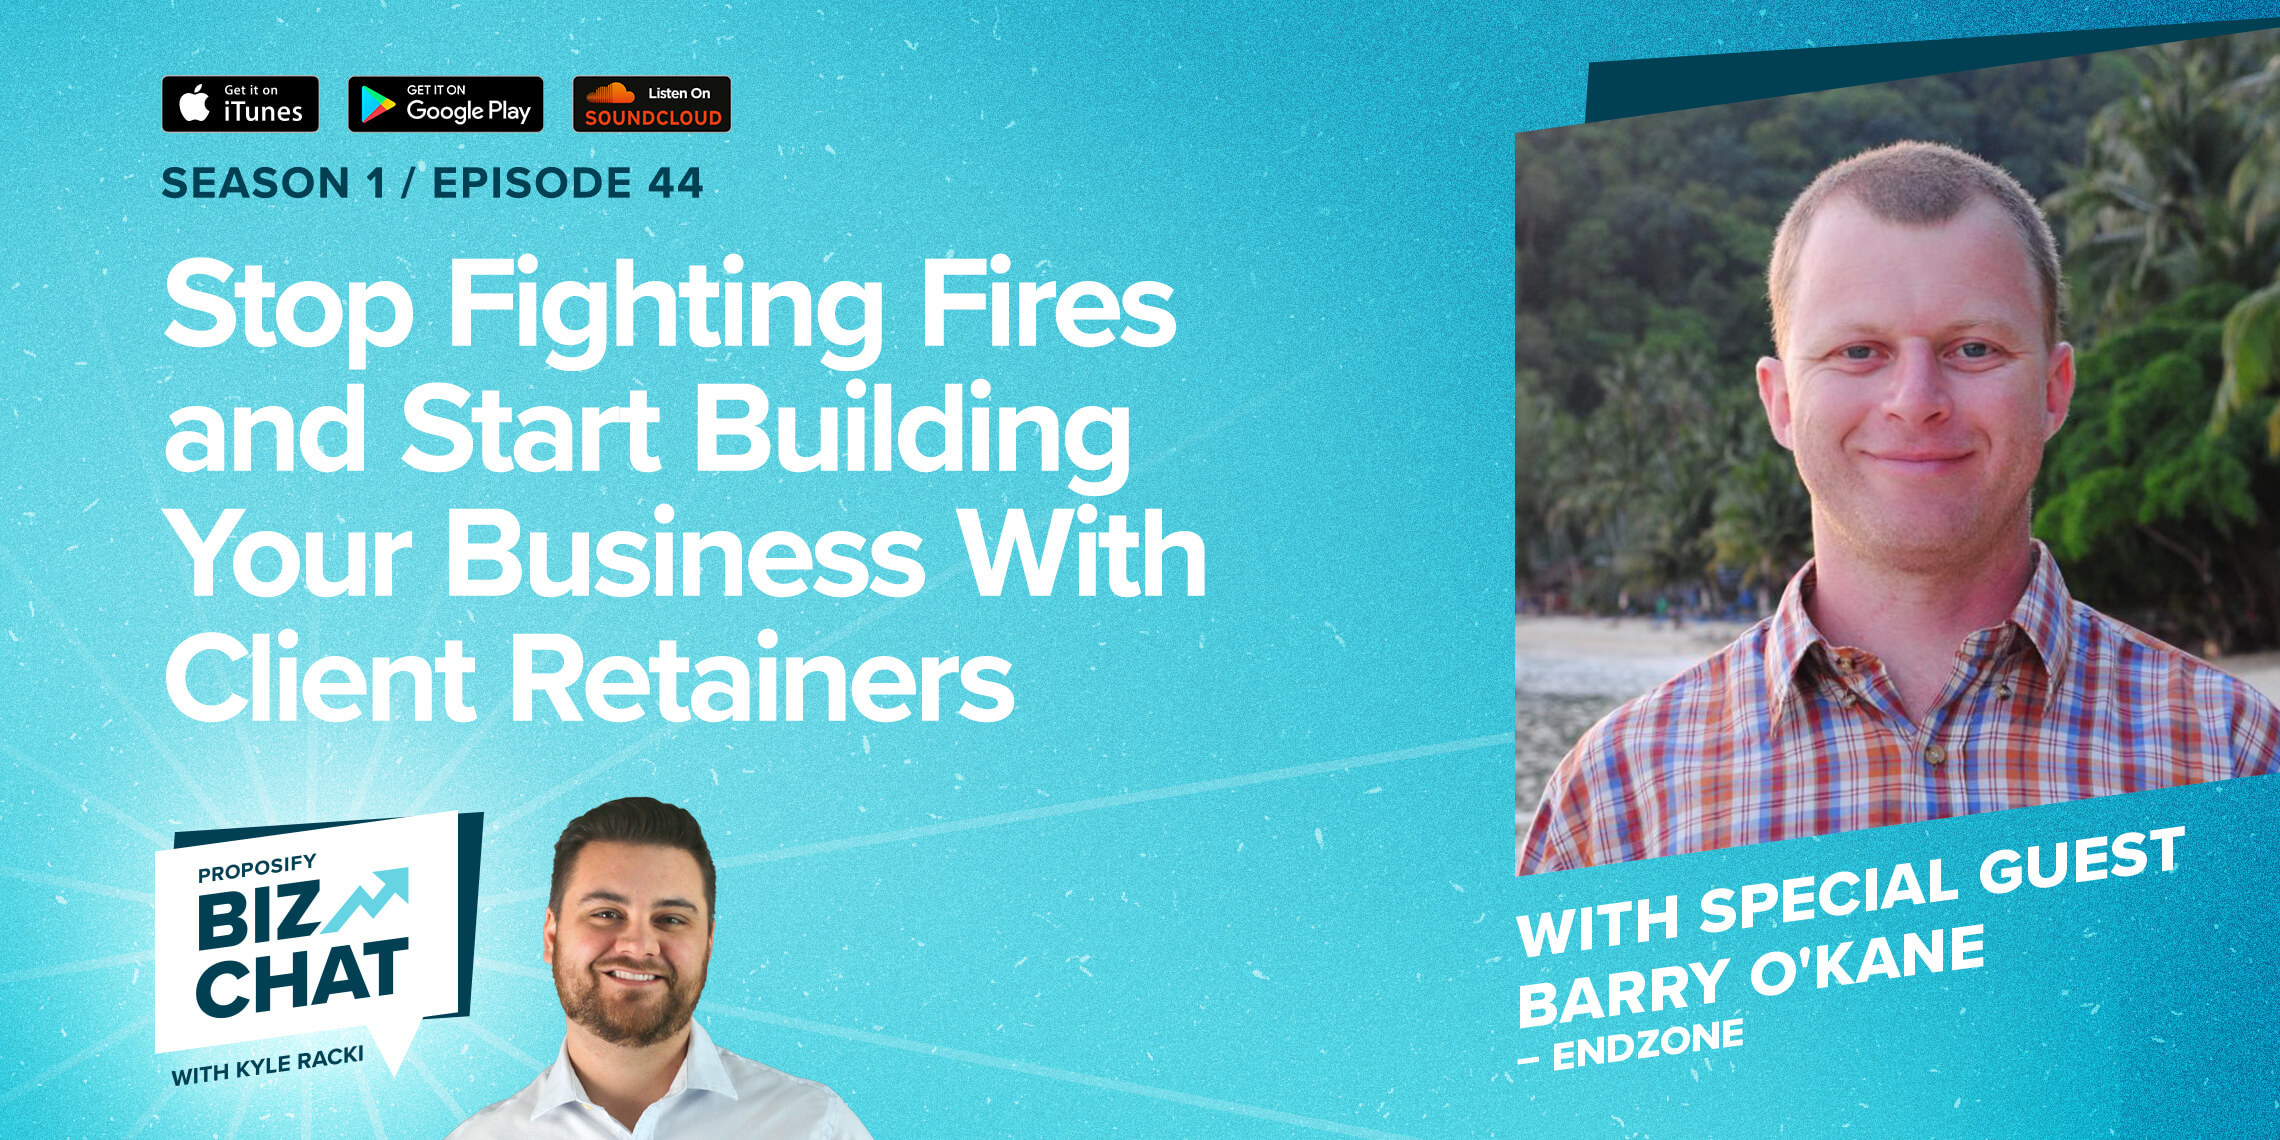 Stop Fighting Fires and Start Building Your Business with Client Retainers